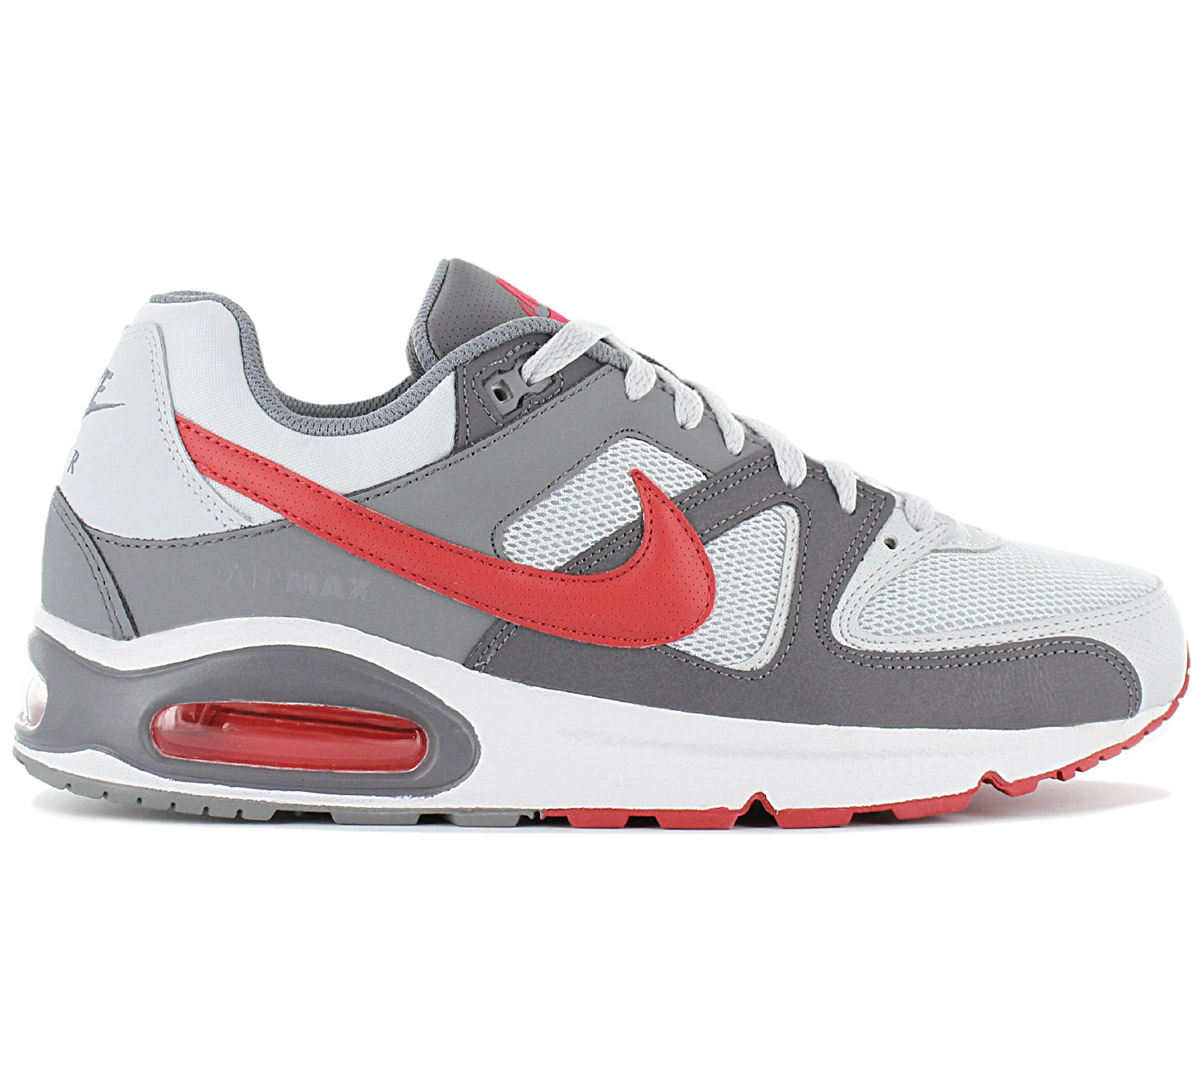 Details about Nike air max Command Men's Sneaker 629993 049 Grey Shoes Sneakers Trainers